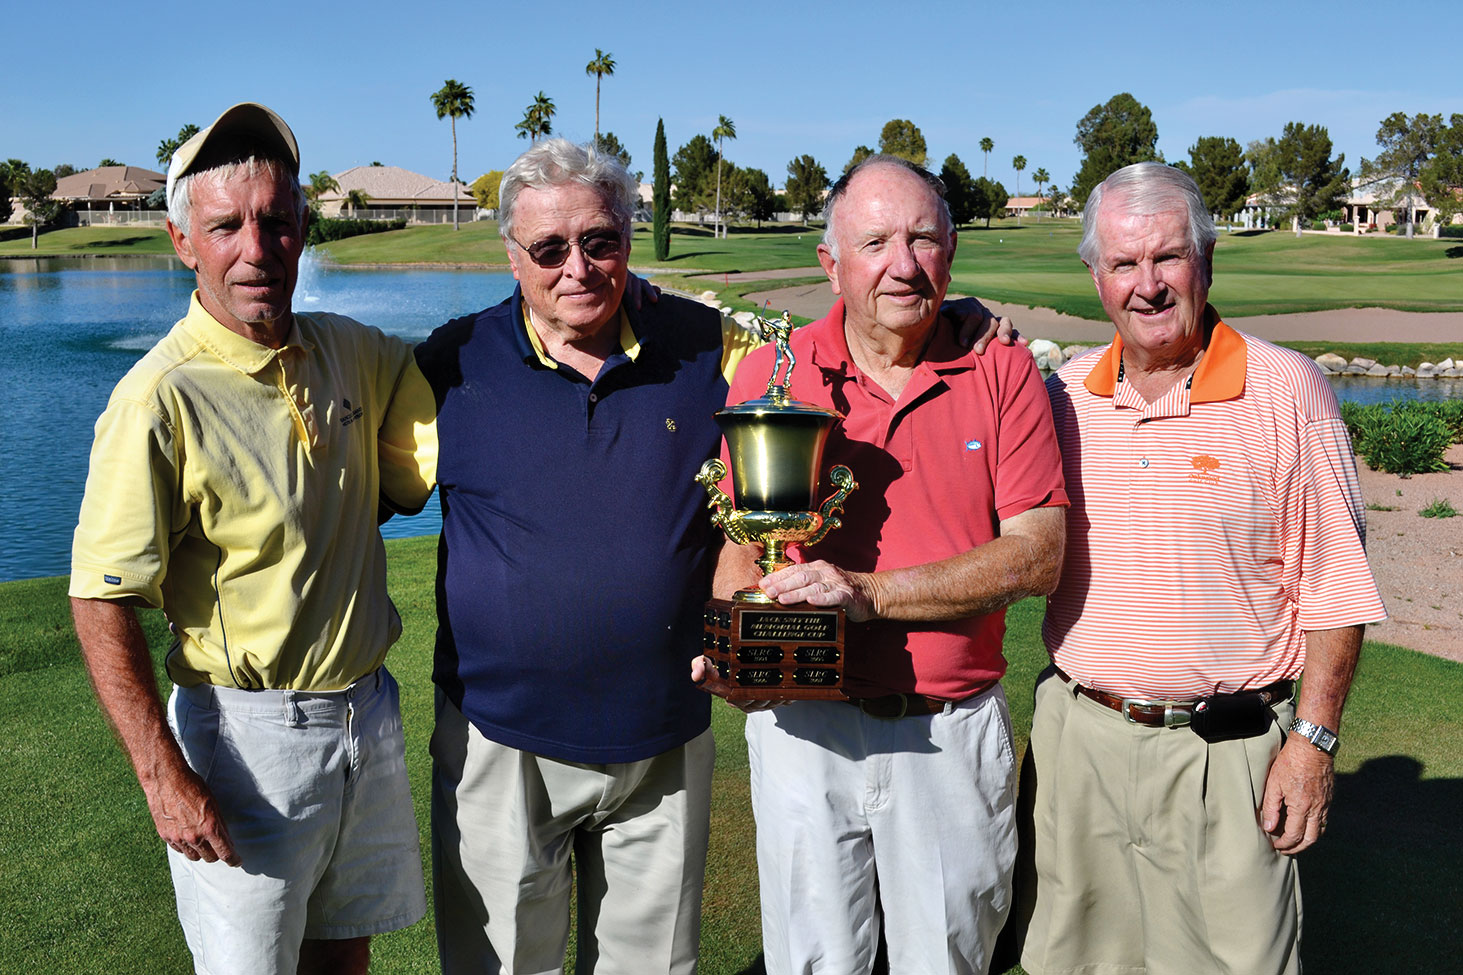 The winners of the Jack Smythe Memorial Golf Challenge Cup for 2015 are (left to right) Geoff Goth, Pete Burstynski, Don Robins and Dennis Allan. The cup was won at the 2015 Sun Lakes Rotary Club Invitational Golf Tournament held at Oakwood CC on March 22.